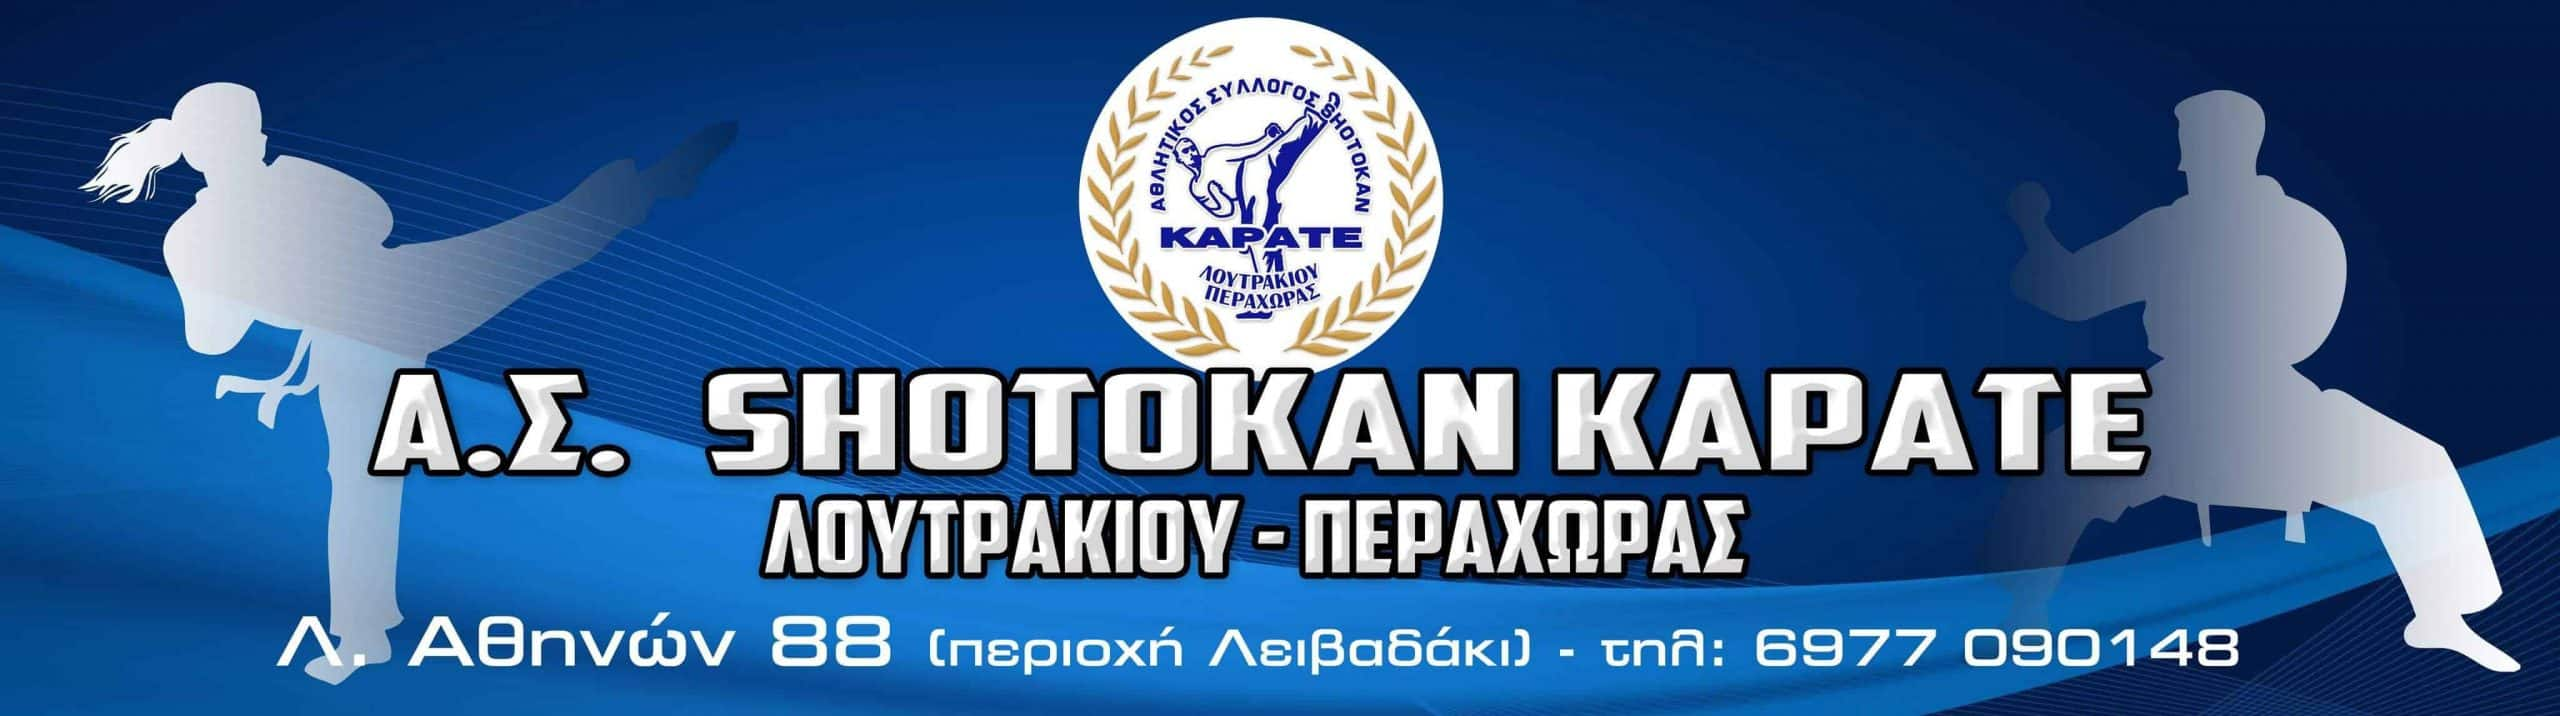 Karate Loutraki Shotocan